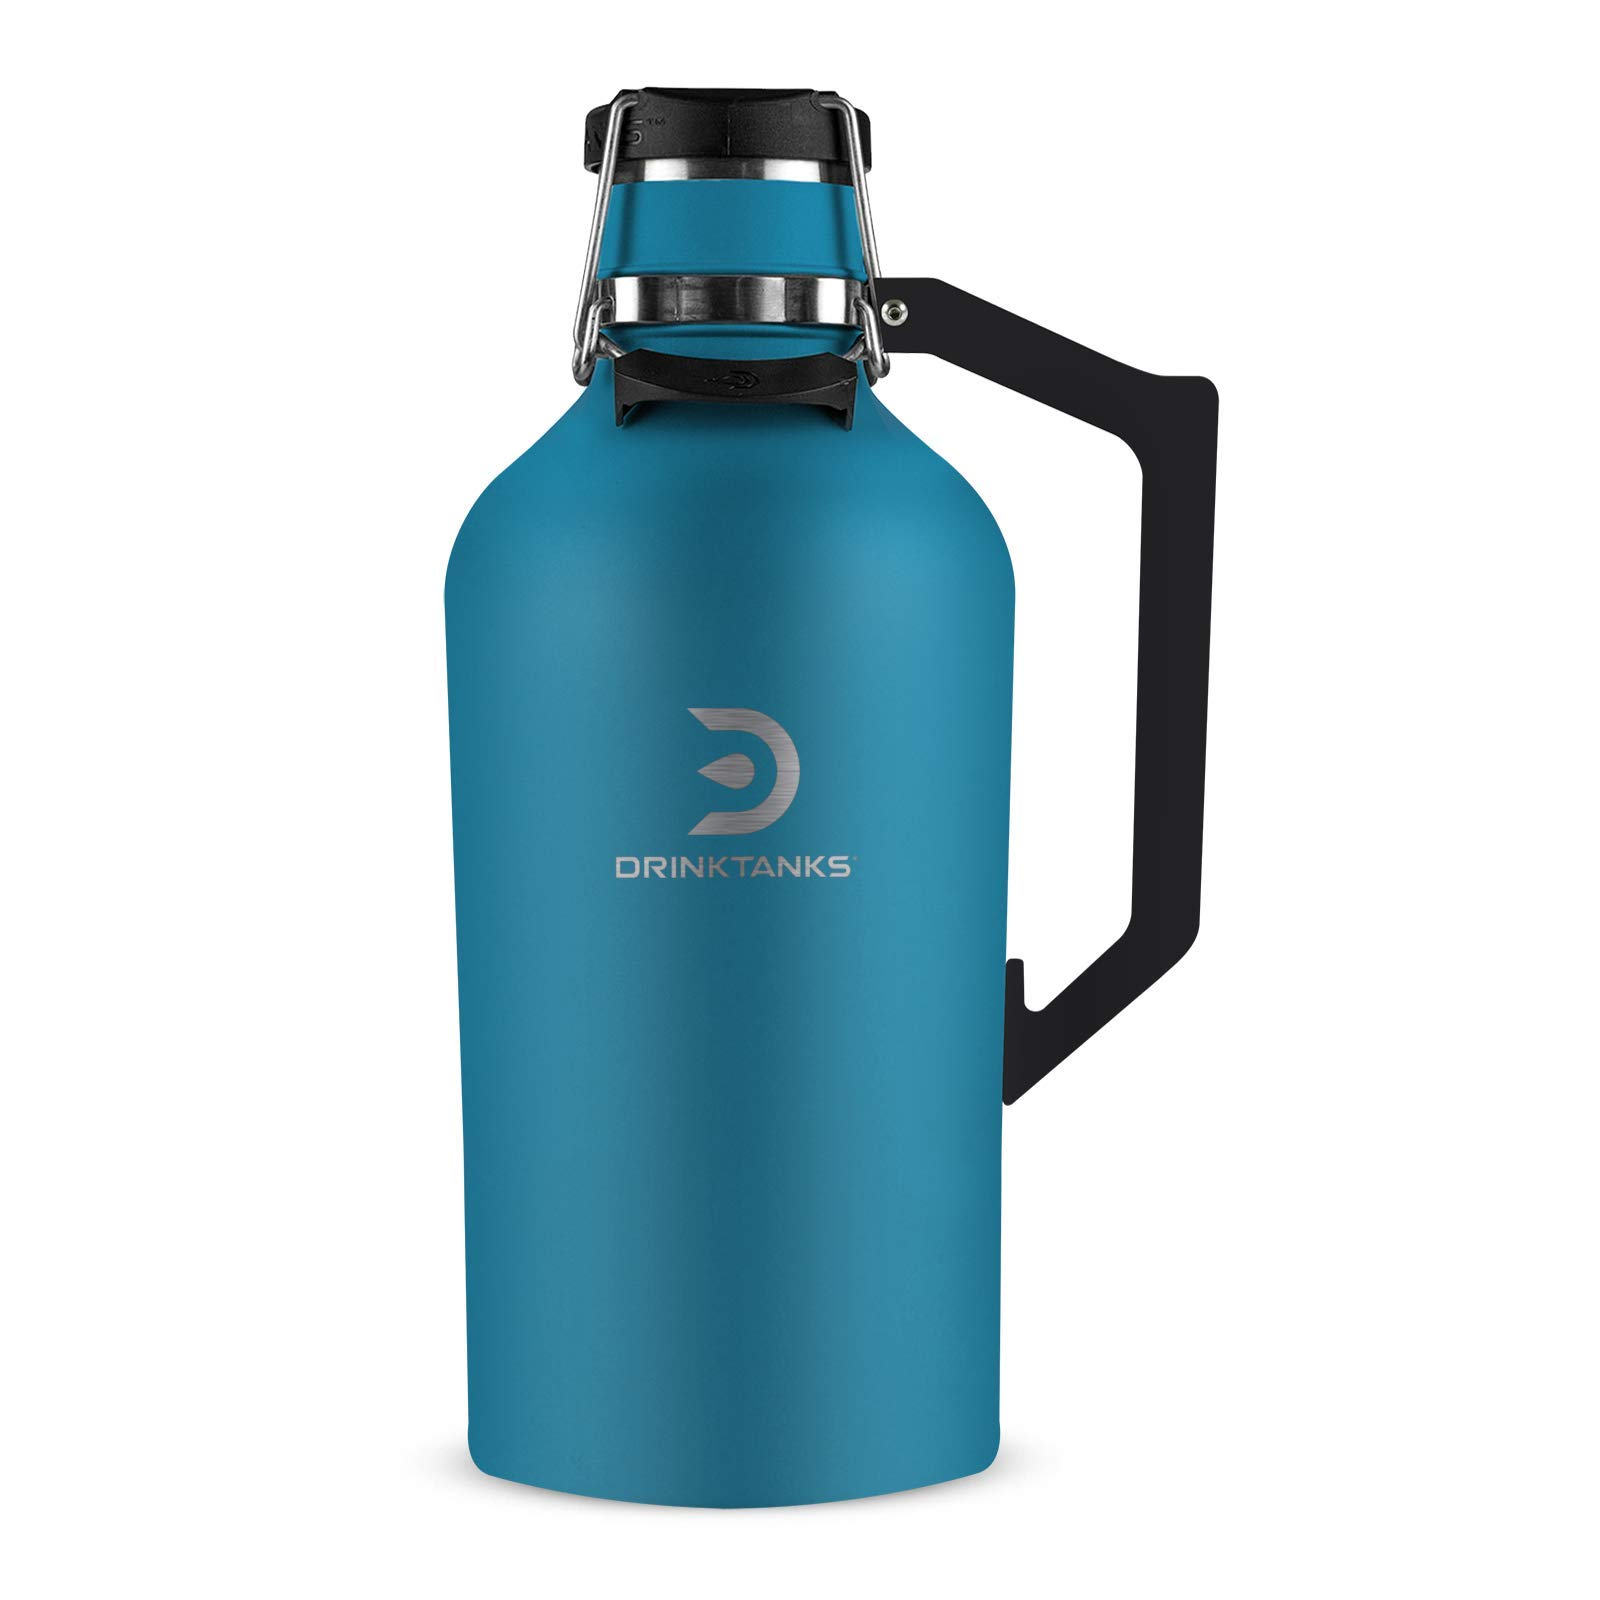 DrinkTanks 128 oz Vacuum Insulated Stainless Steel Beer Growler